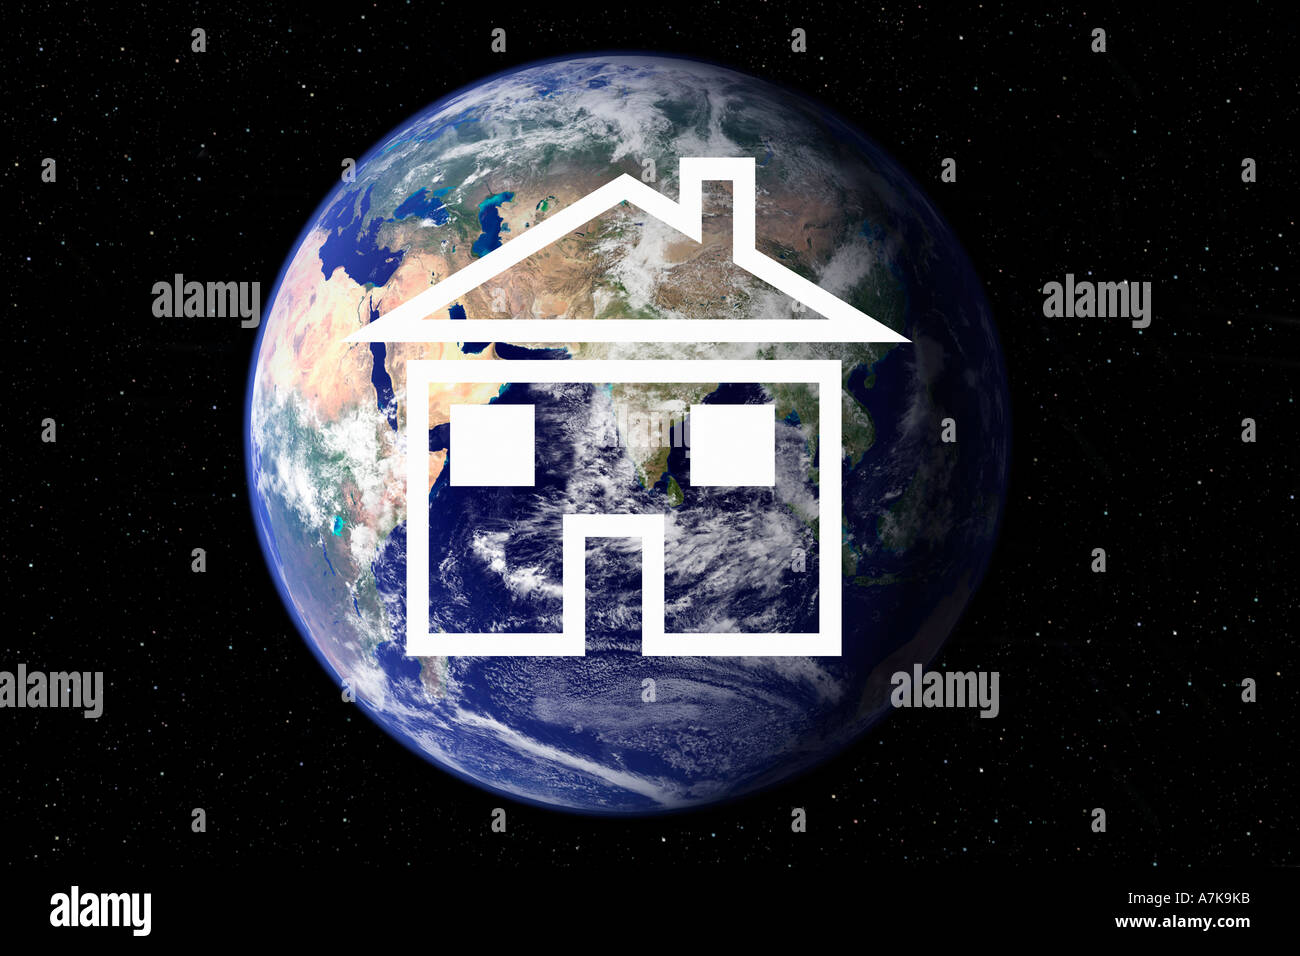 Concept image of the awareness of housing for poor people. - Stock Image